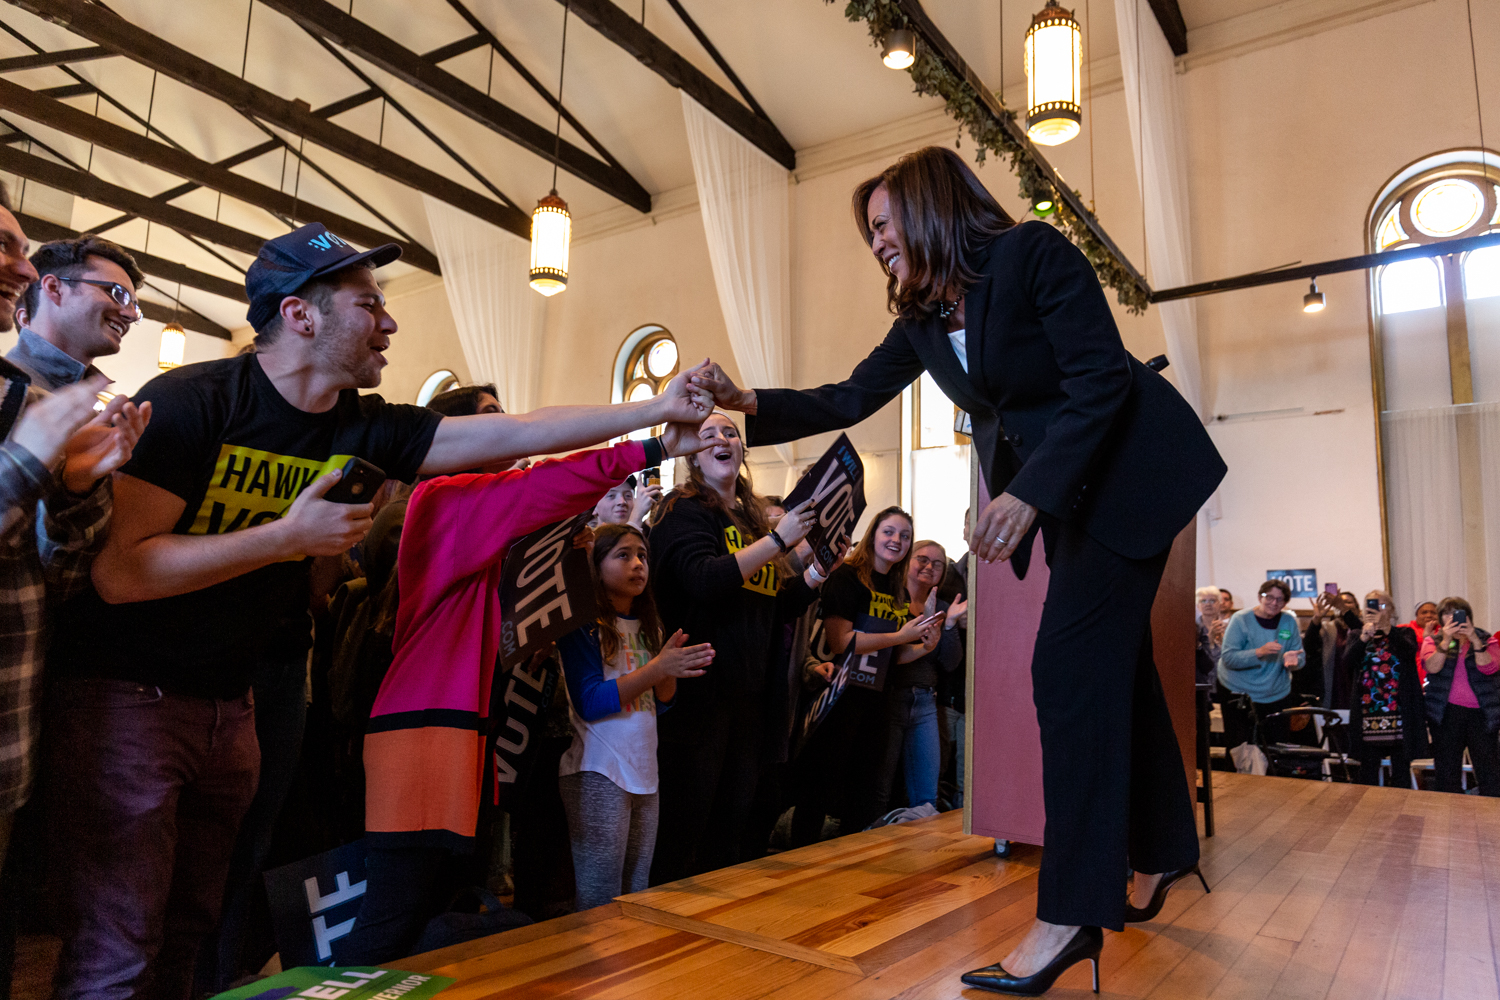 Sen. Kamala Harris (D-Calif.) shakes hands with an attendee at a rally at Old Brick in Iowa City on Tuesday, Oct. 23, 2018